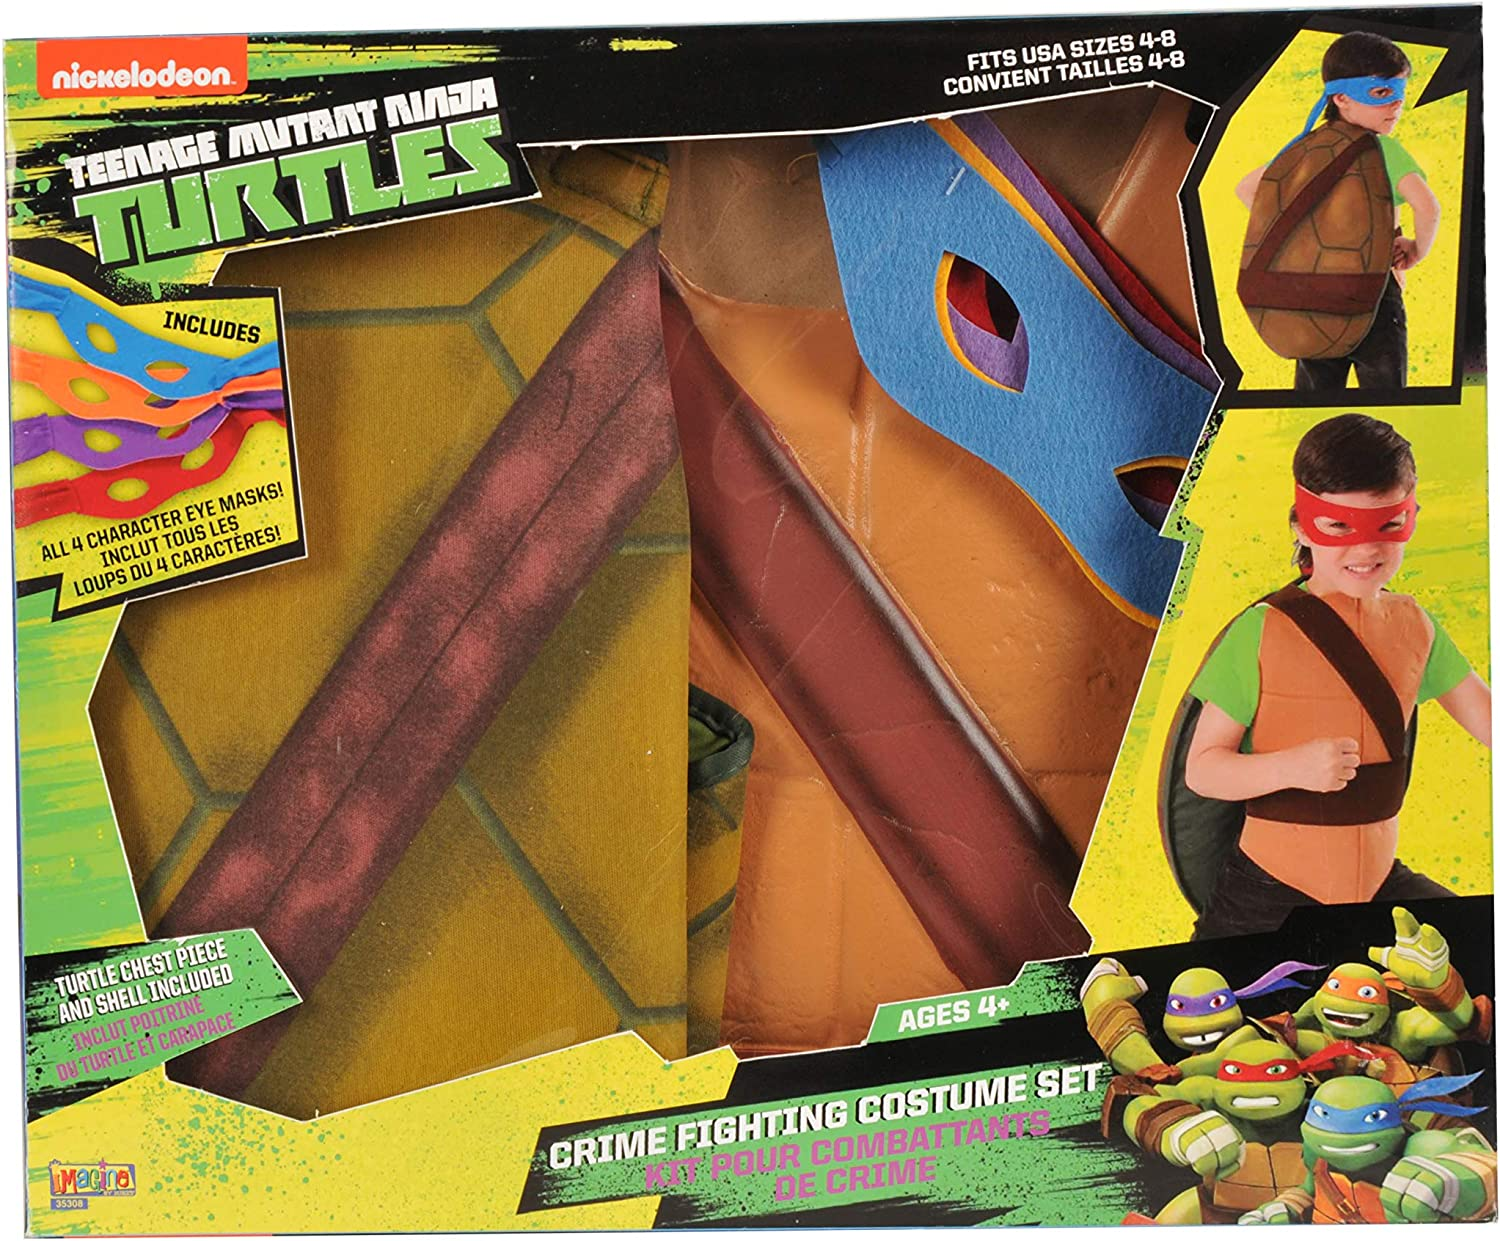 Amazon.com: Teenage Mutant Ninja Turtles Lucha contra la ...